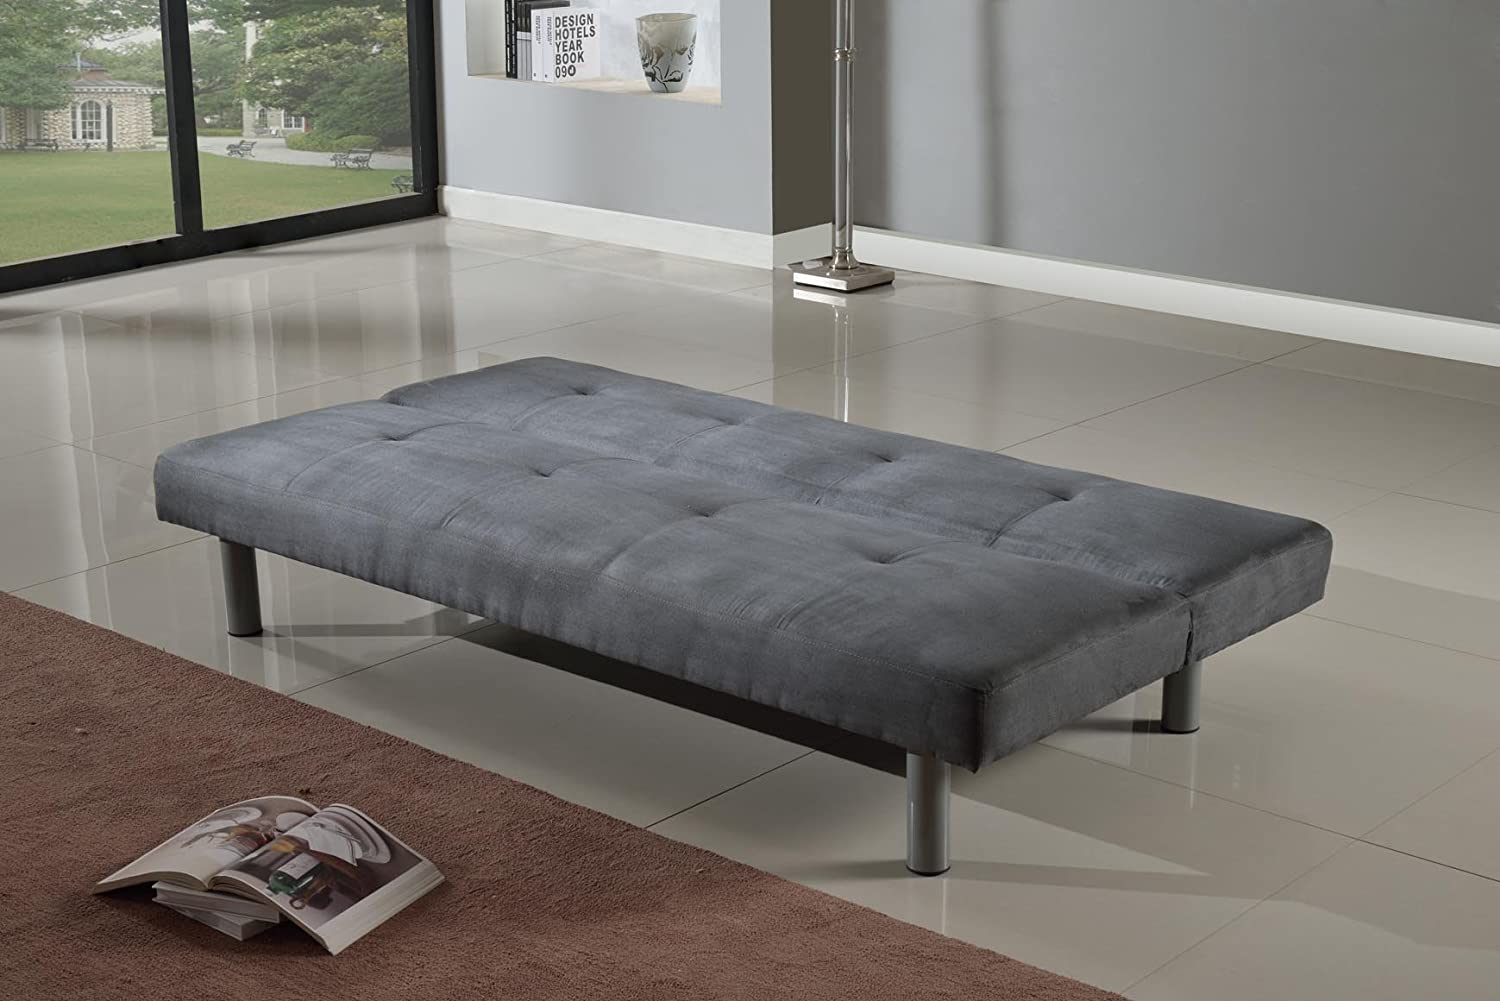 Faux Suede 3 Seater Quality Sofa Bed   Click Clac Fabric Sofabed In GREY:  Amazon.co.uk: Kitchen U0026 Home